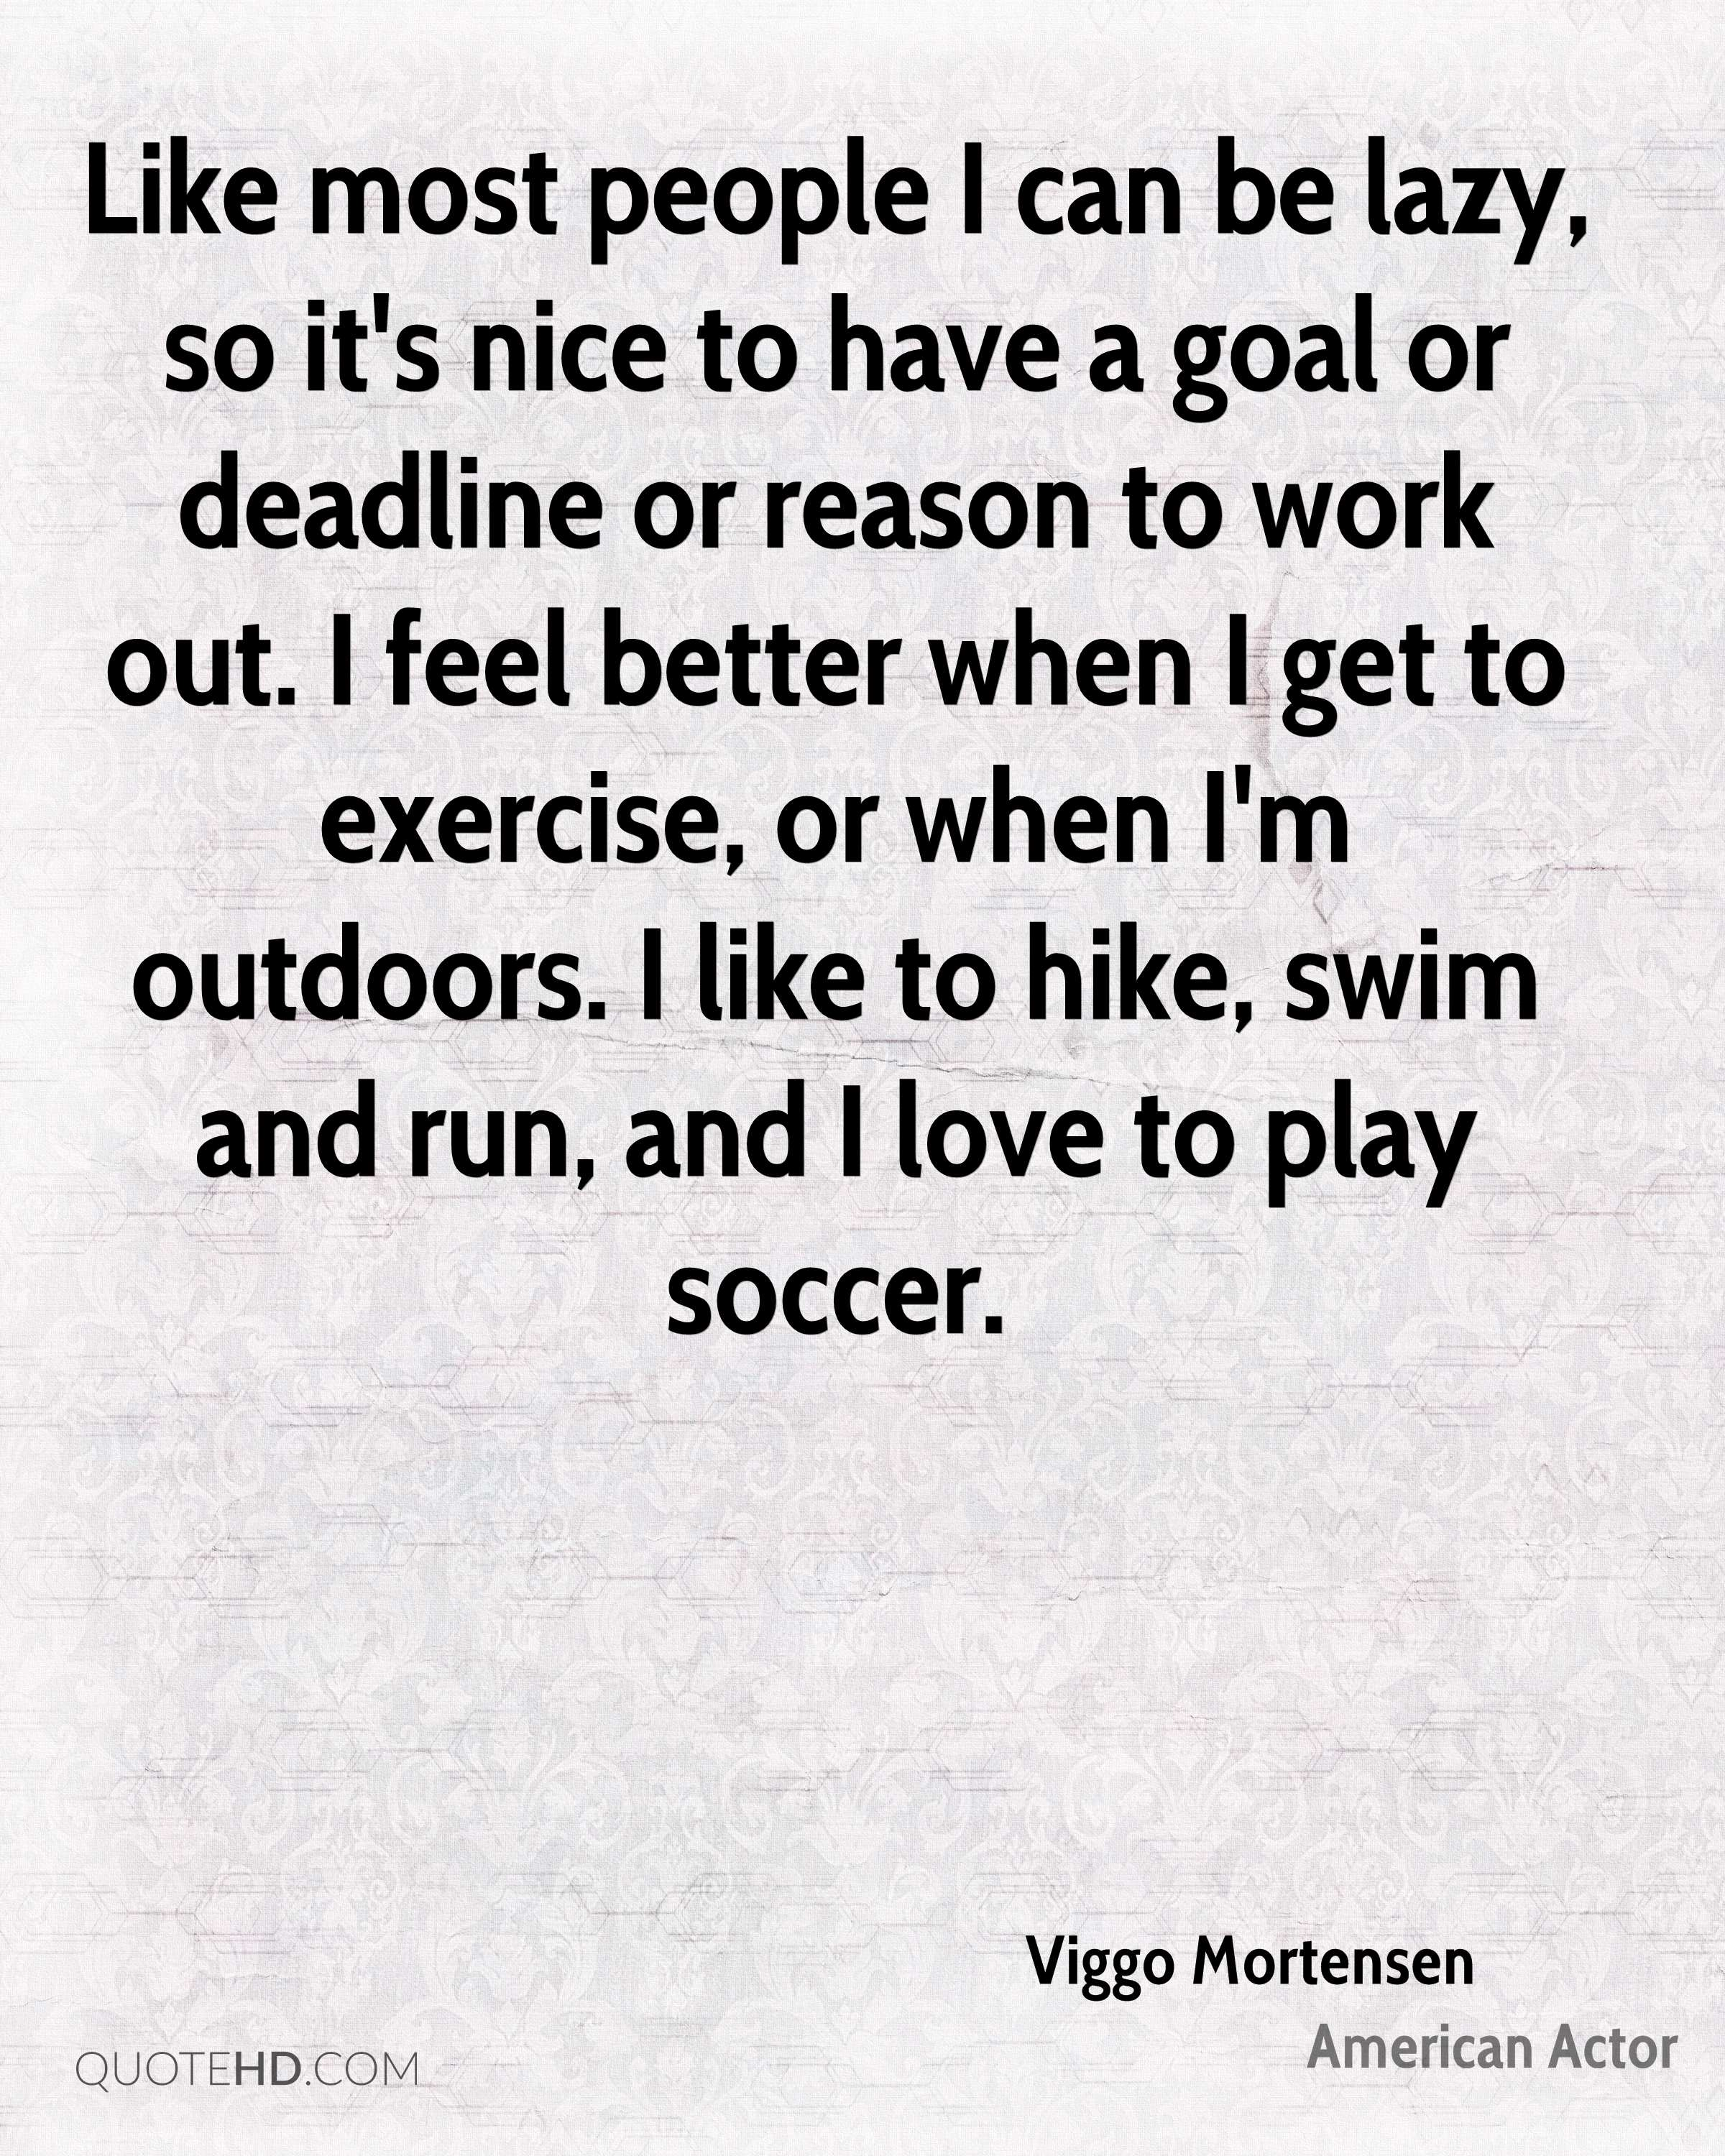 Like most people I can be lazy, so it's nice to have a goal or deadline or reason to work out. I feel better when I get to exercise, or when I'm outdoors. I like to hike, swim and run, and I love to play soccer.